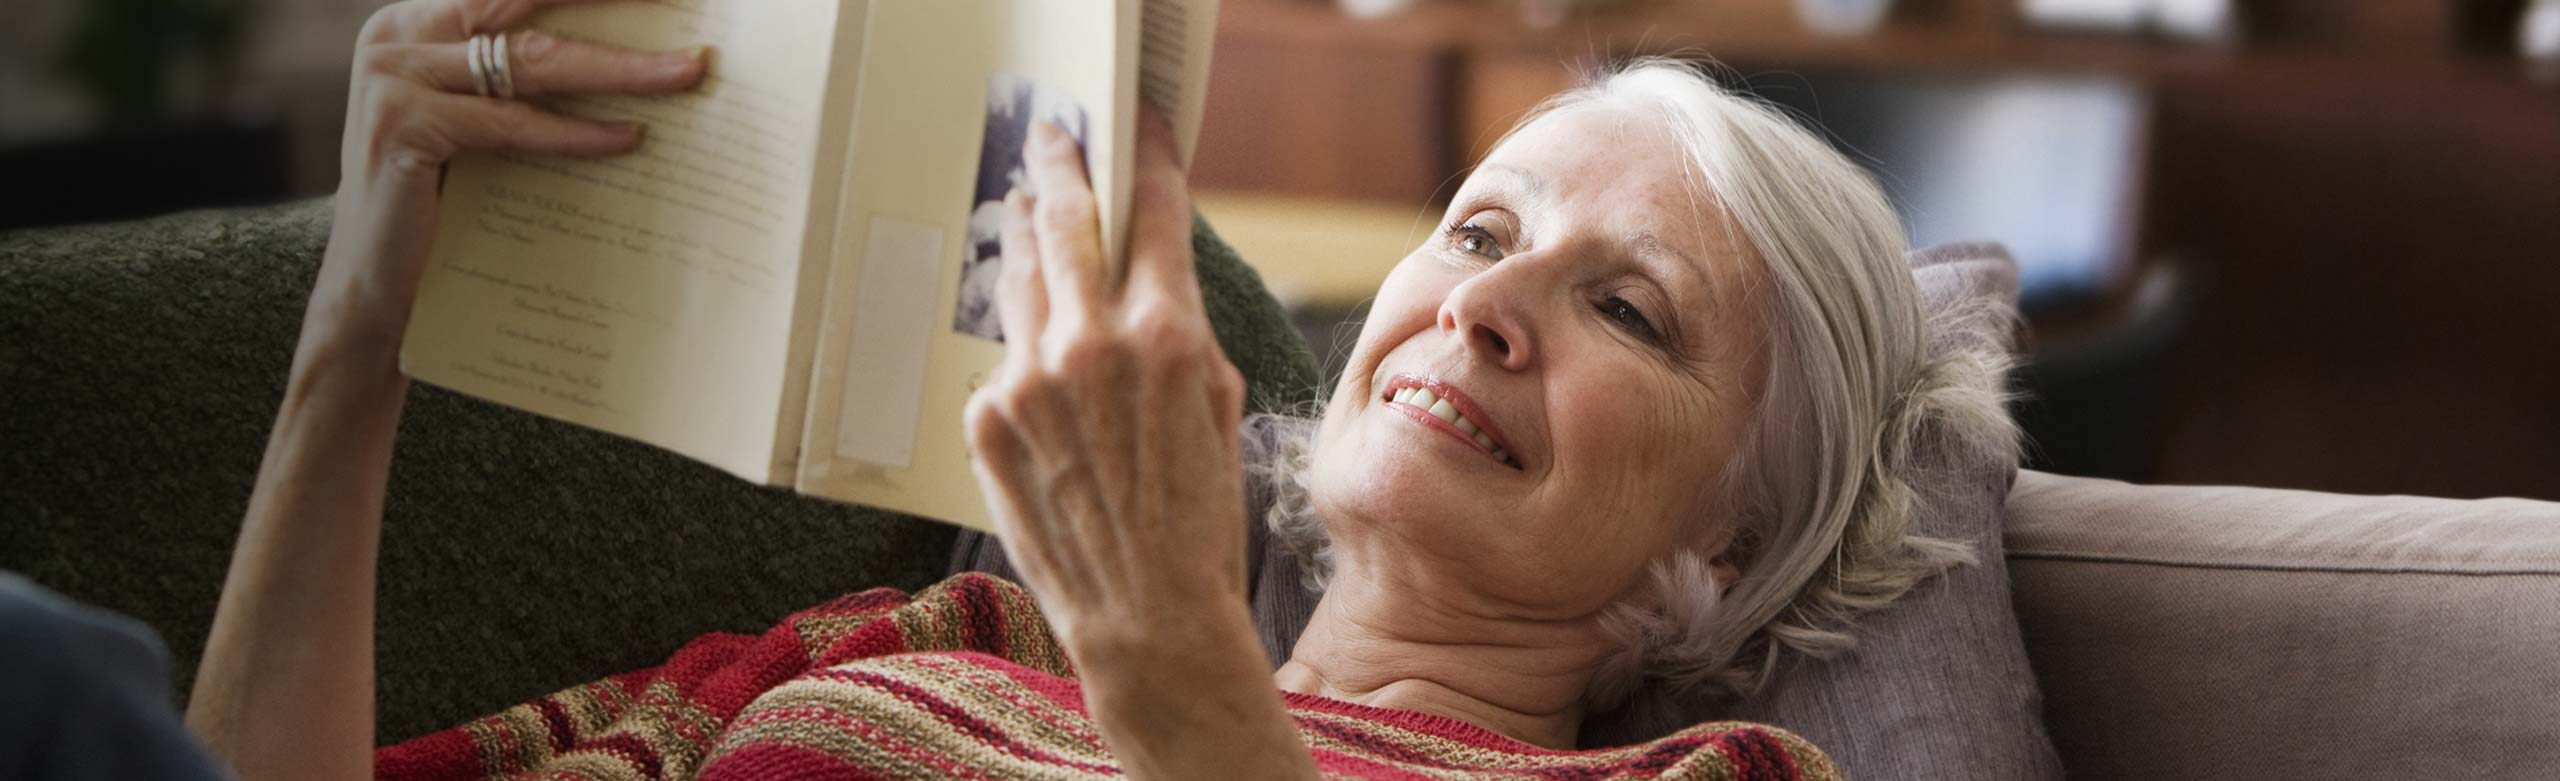 Woman laying on couch reading book